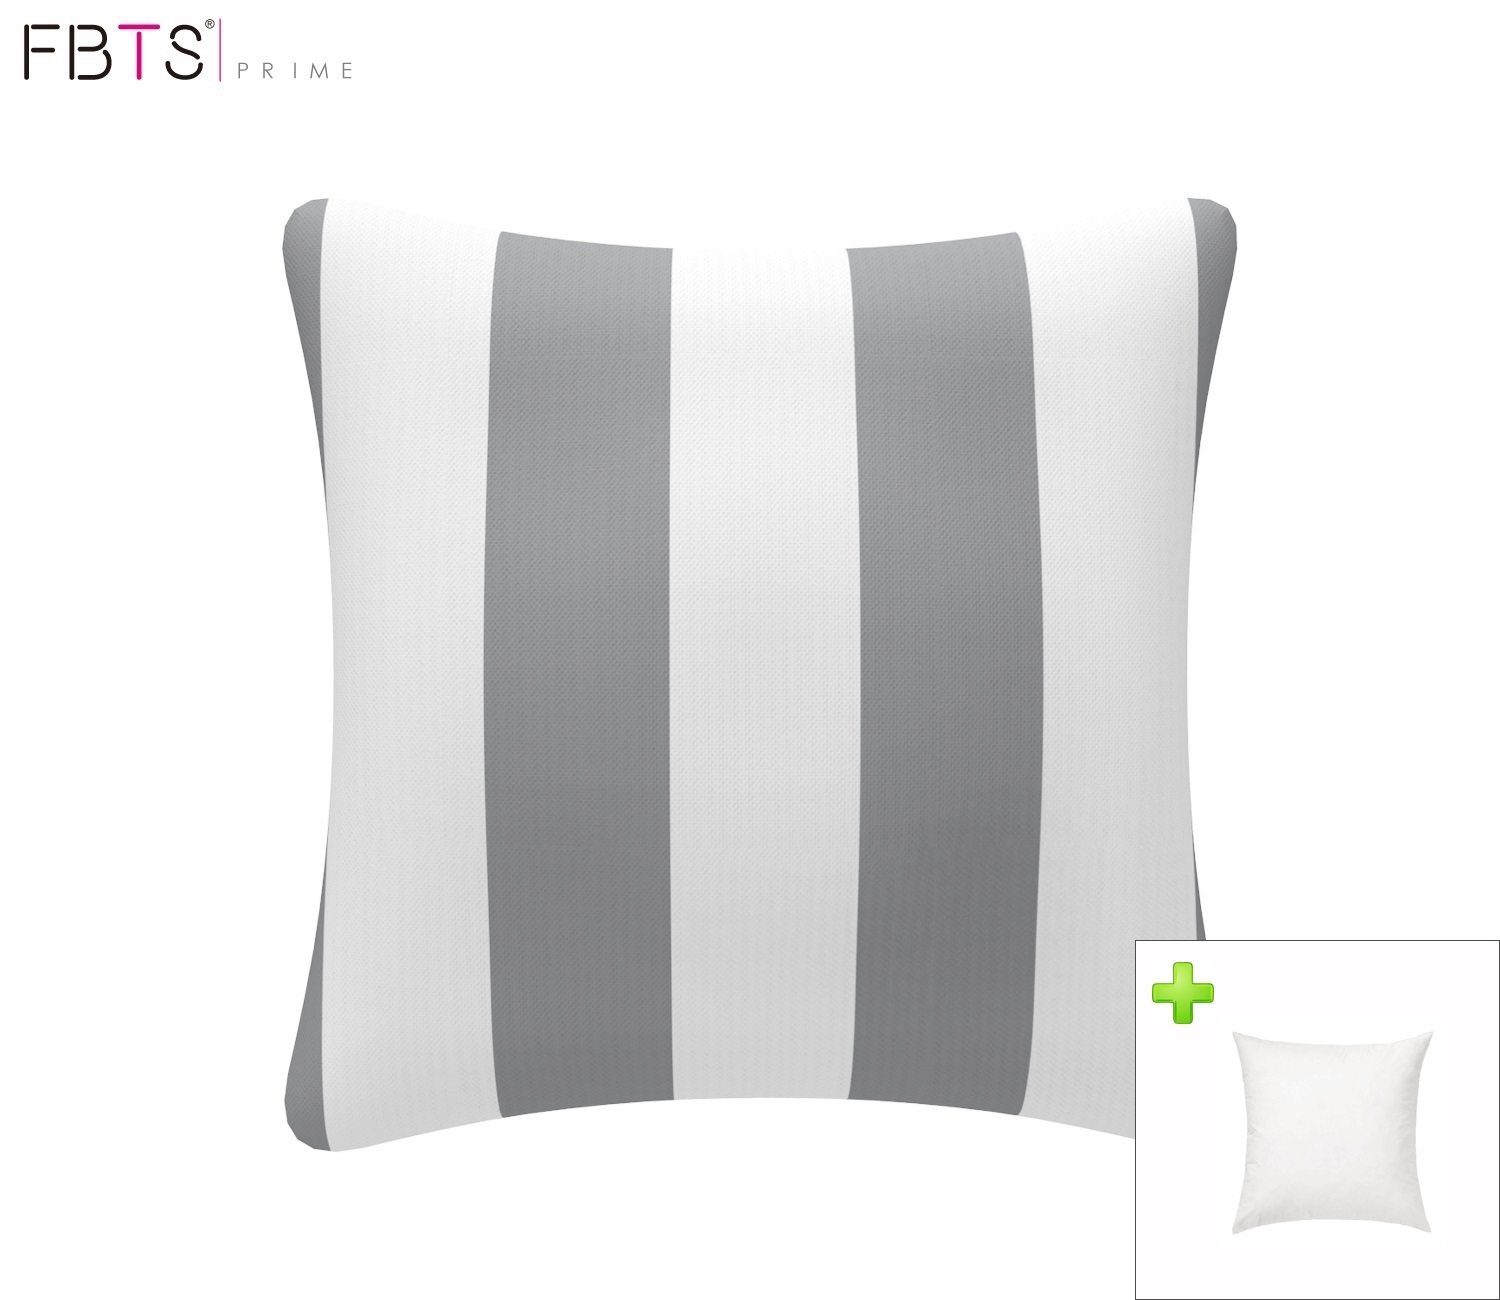 FBTS Prime Outdoor Decorative Pillows with Insert Red and White Stripe Patio Accent Pillows Throw Covers 18x18 Inches Square Patio Cushions for Couch Bed Sofa Patio Furniture